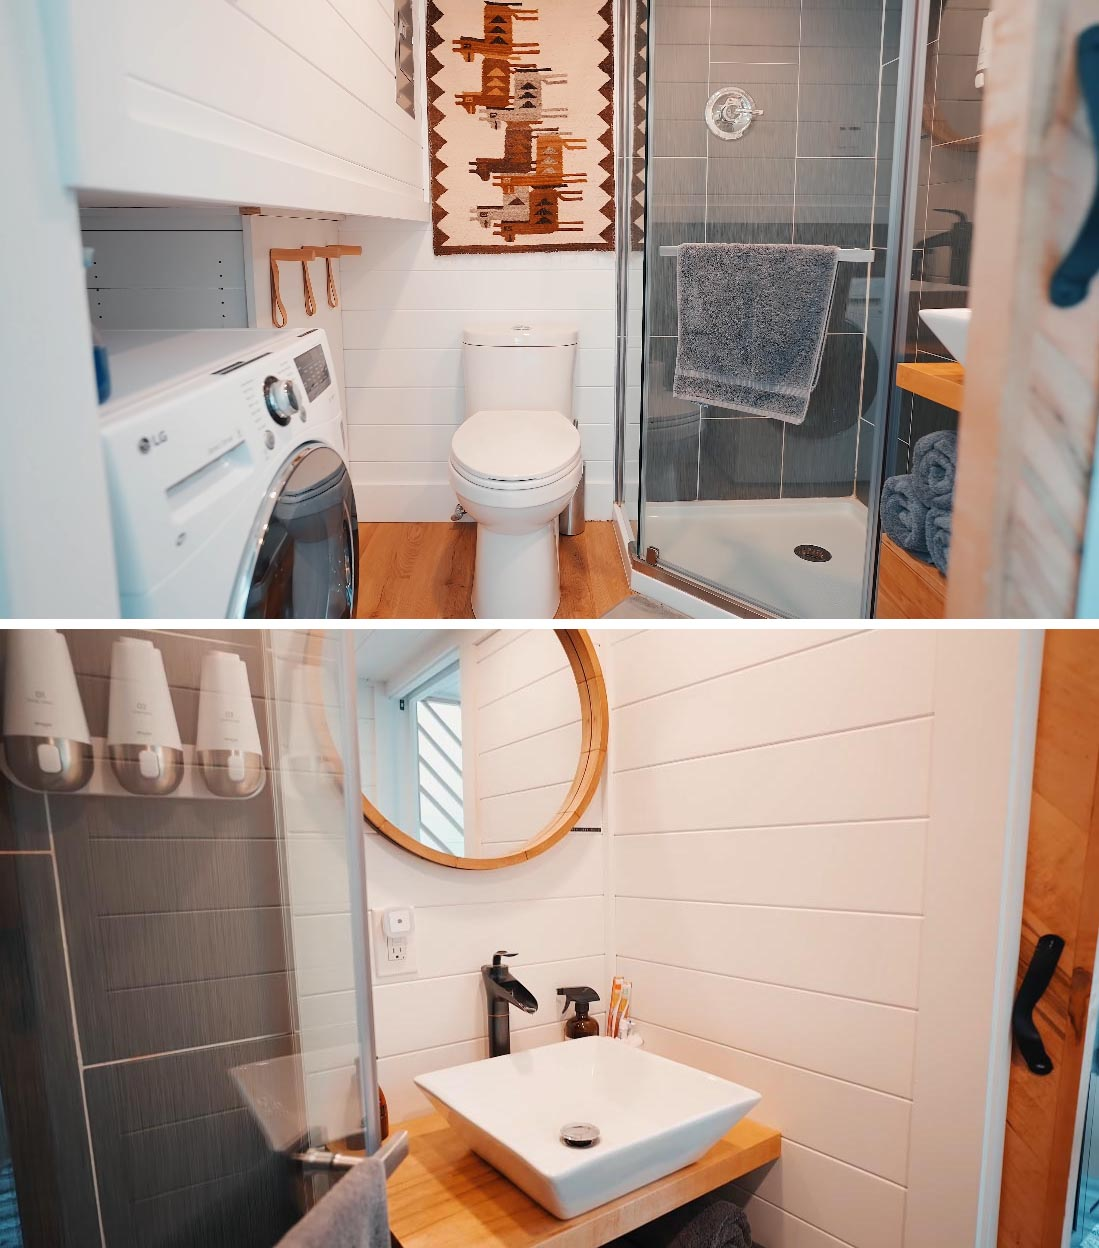 The bathroom of this Scandinavian-inspired tiny home includes a toilet, a shower with vertical gray tiles, a wood vanity with round mirror hanging on the wall above, and a washing machine.